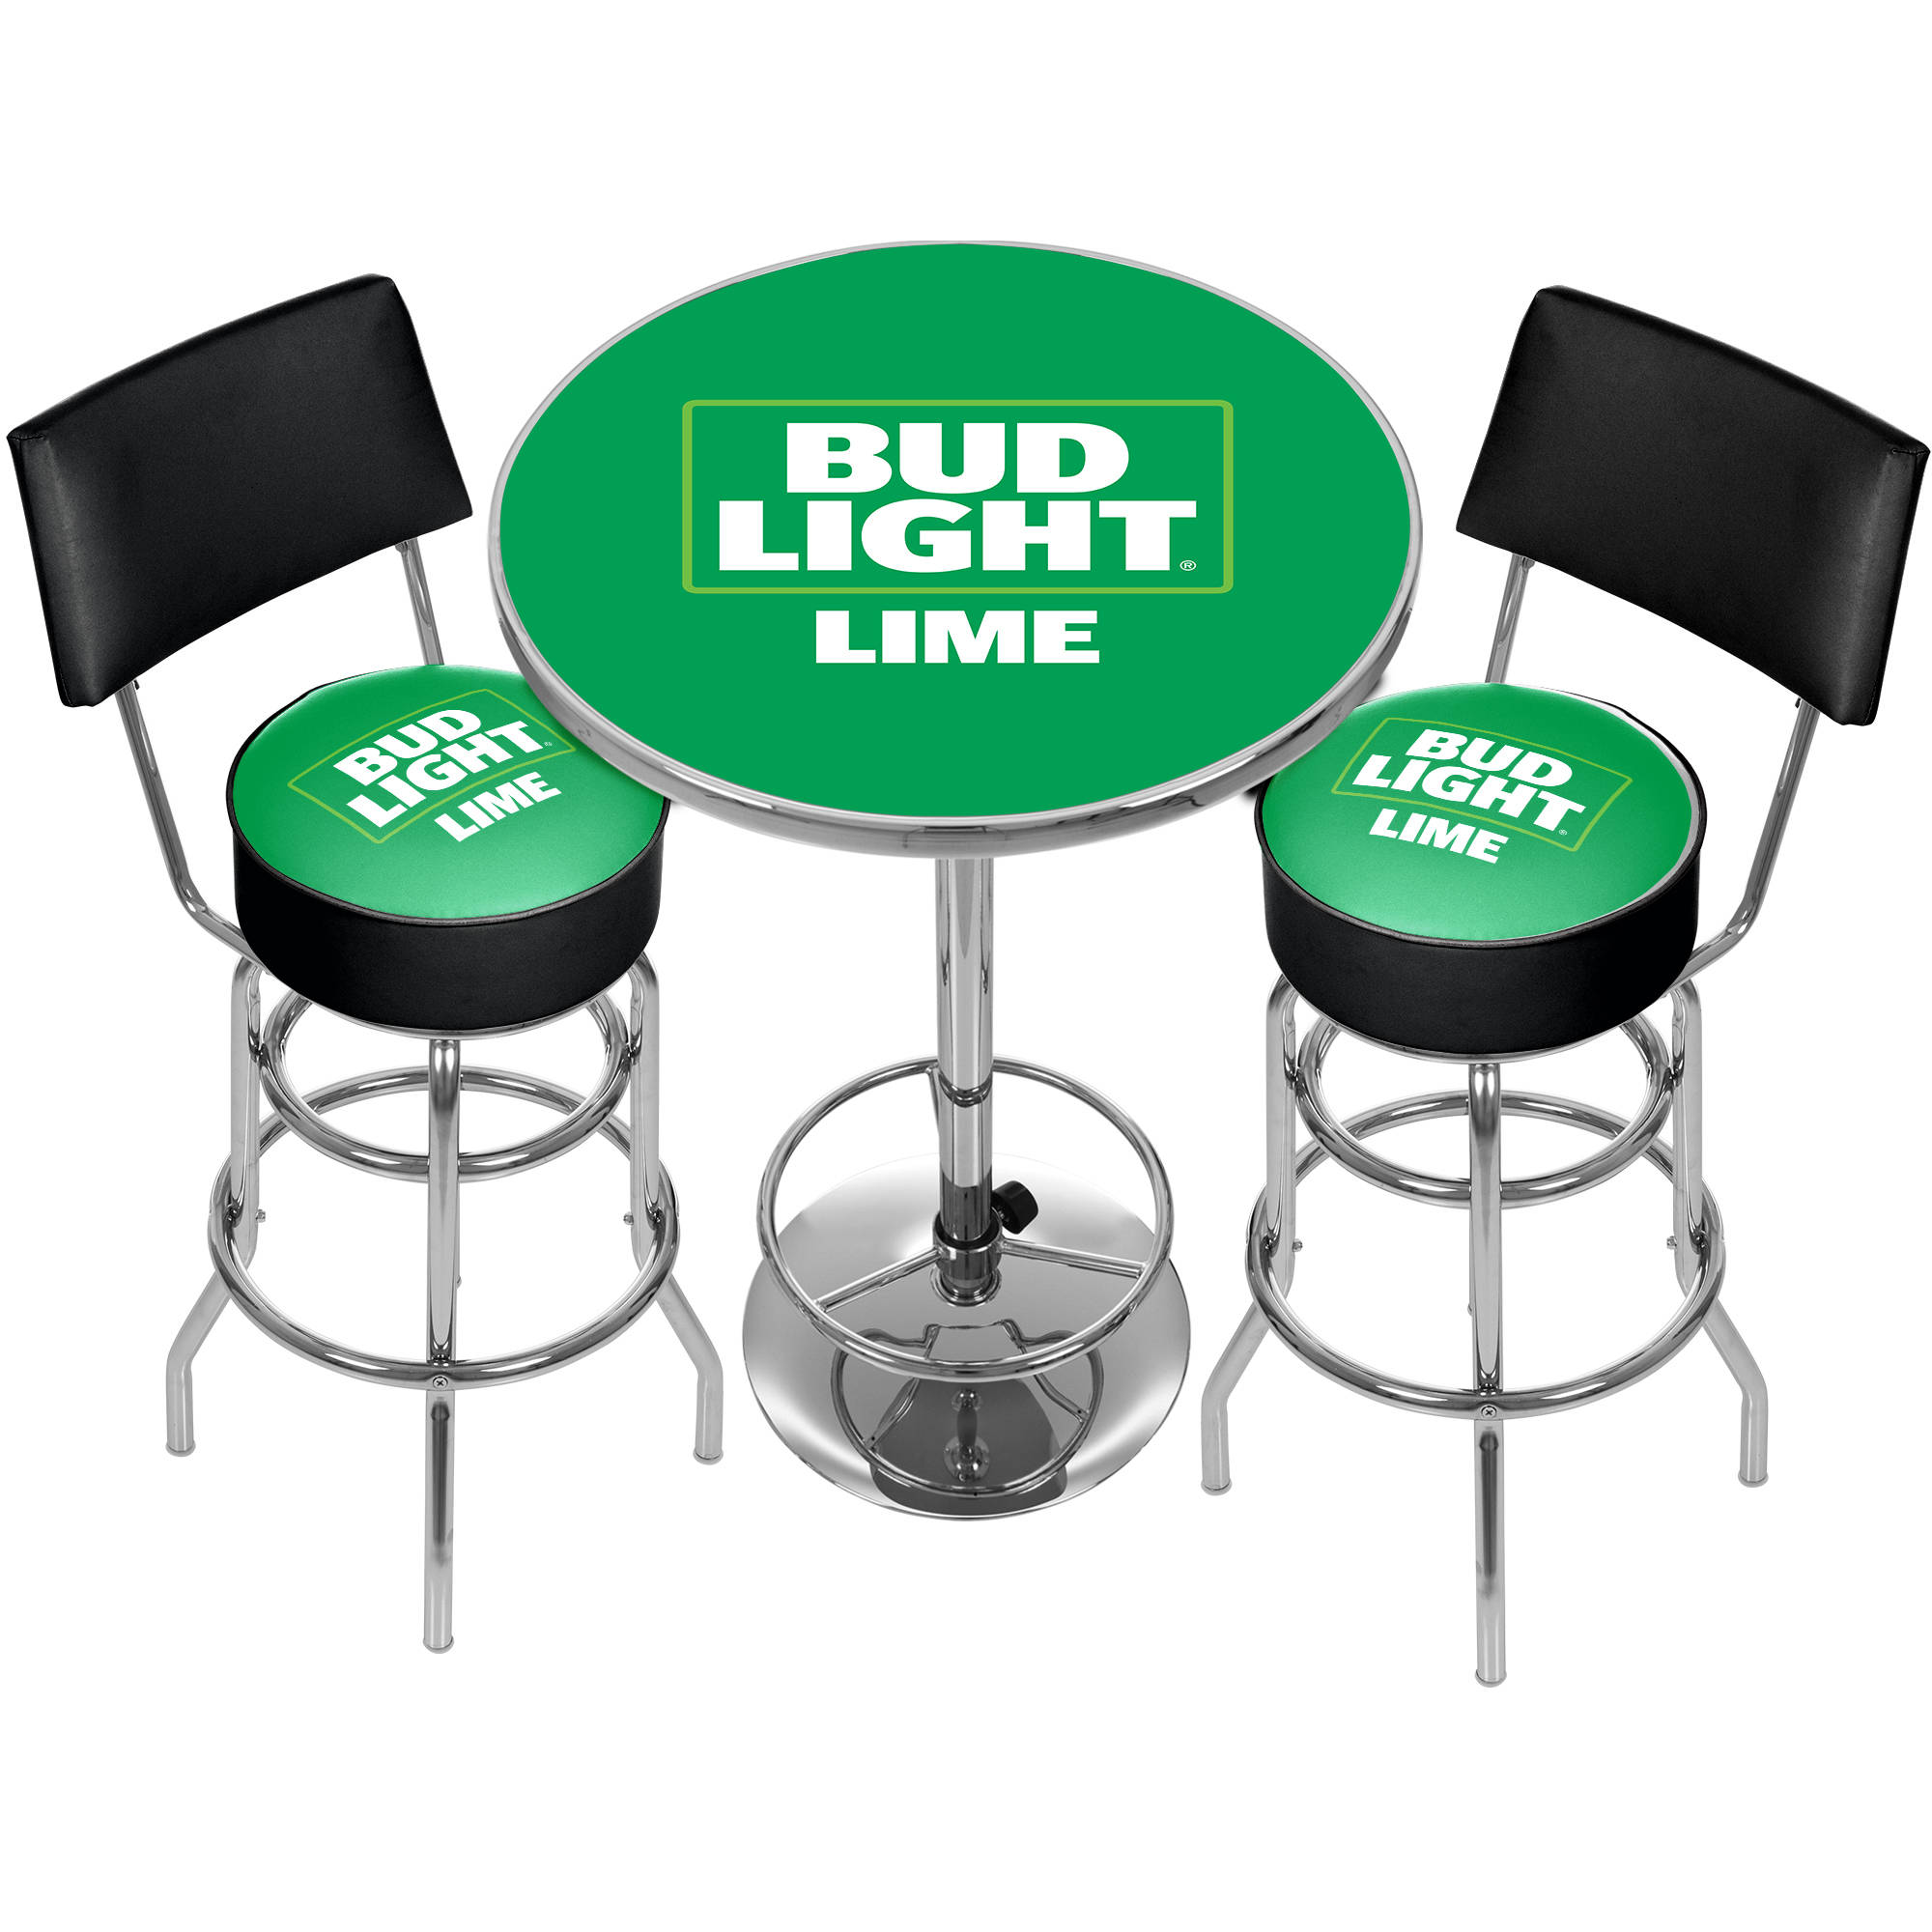 Bud Light Lime Metal 2 Shelf Portable Bar Table With Carrying Case